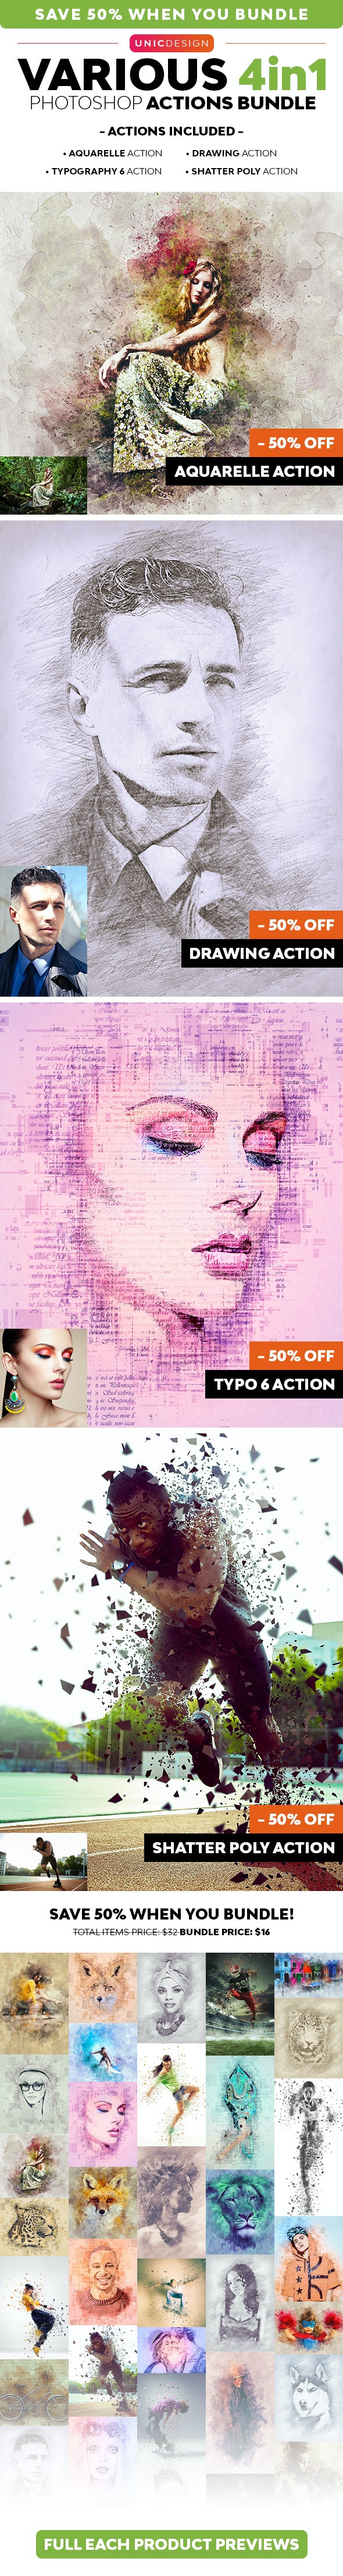 Various 4in1 Photoshop Actions Bundle